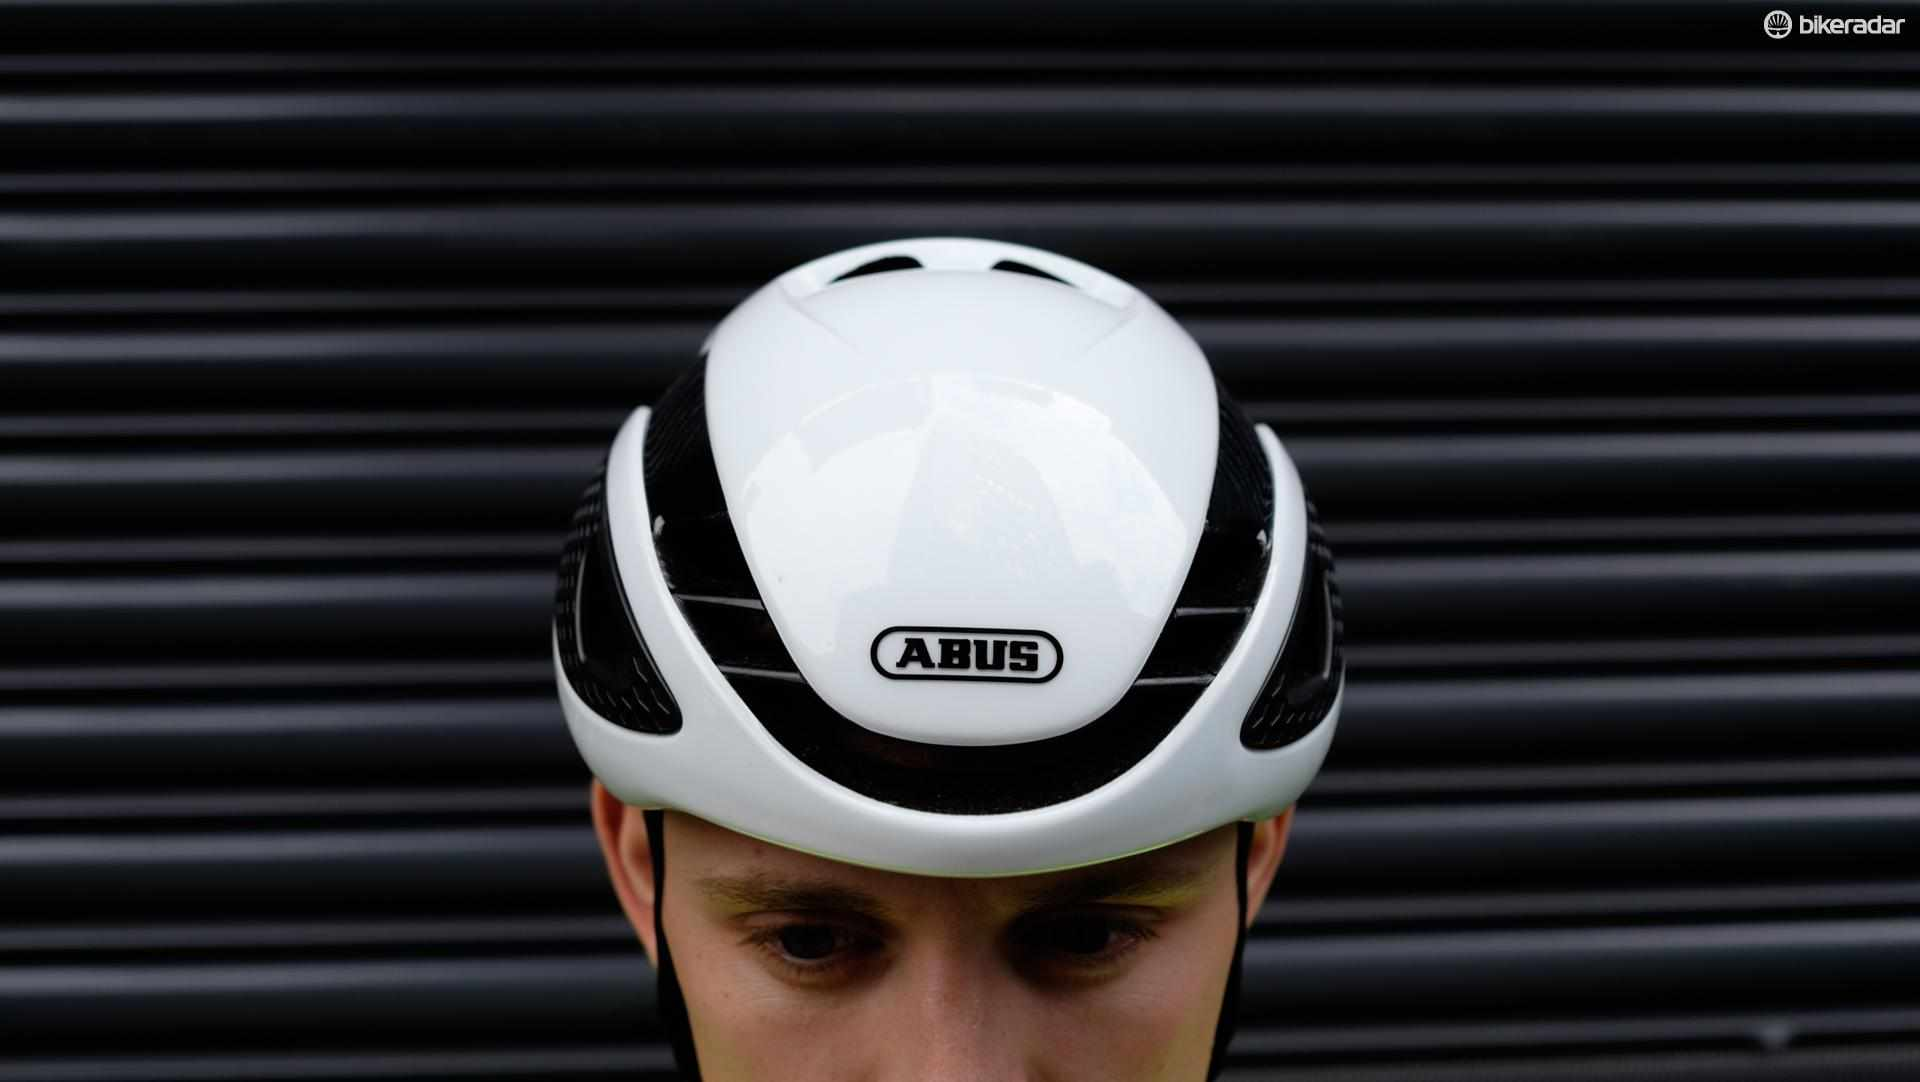 The helmet has a slim profile